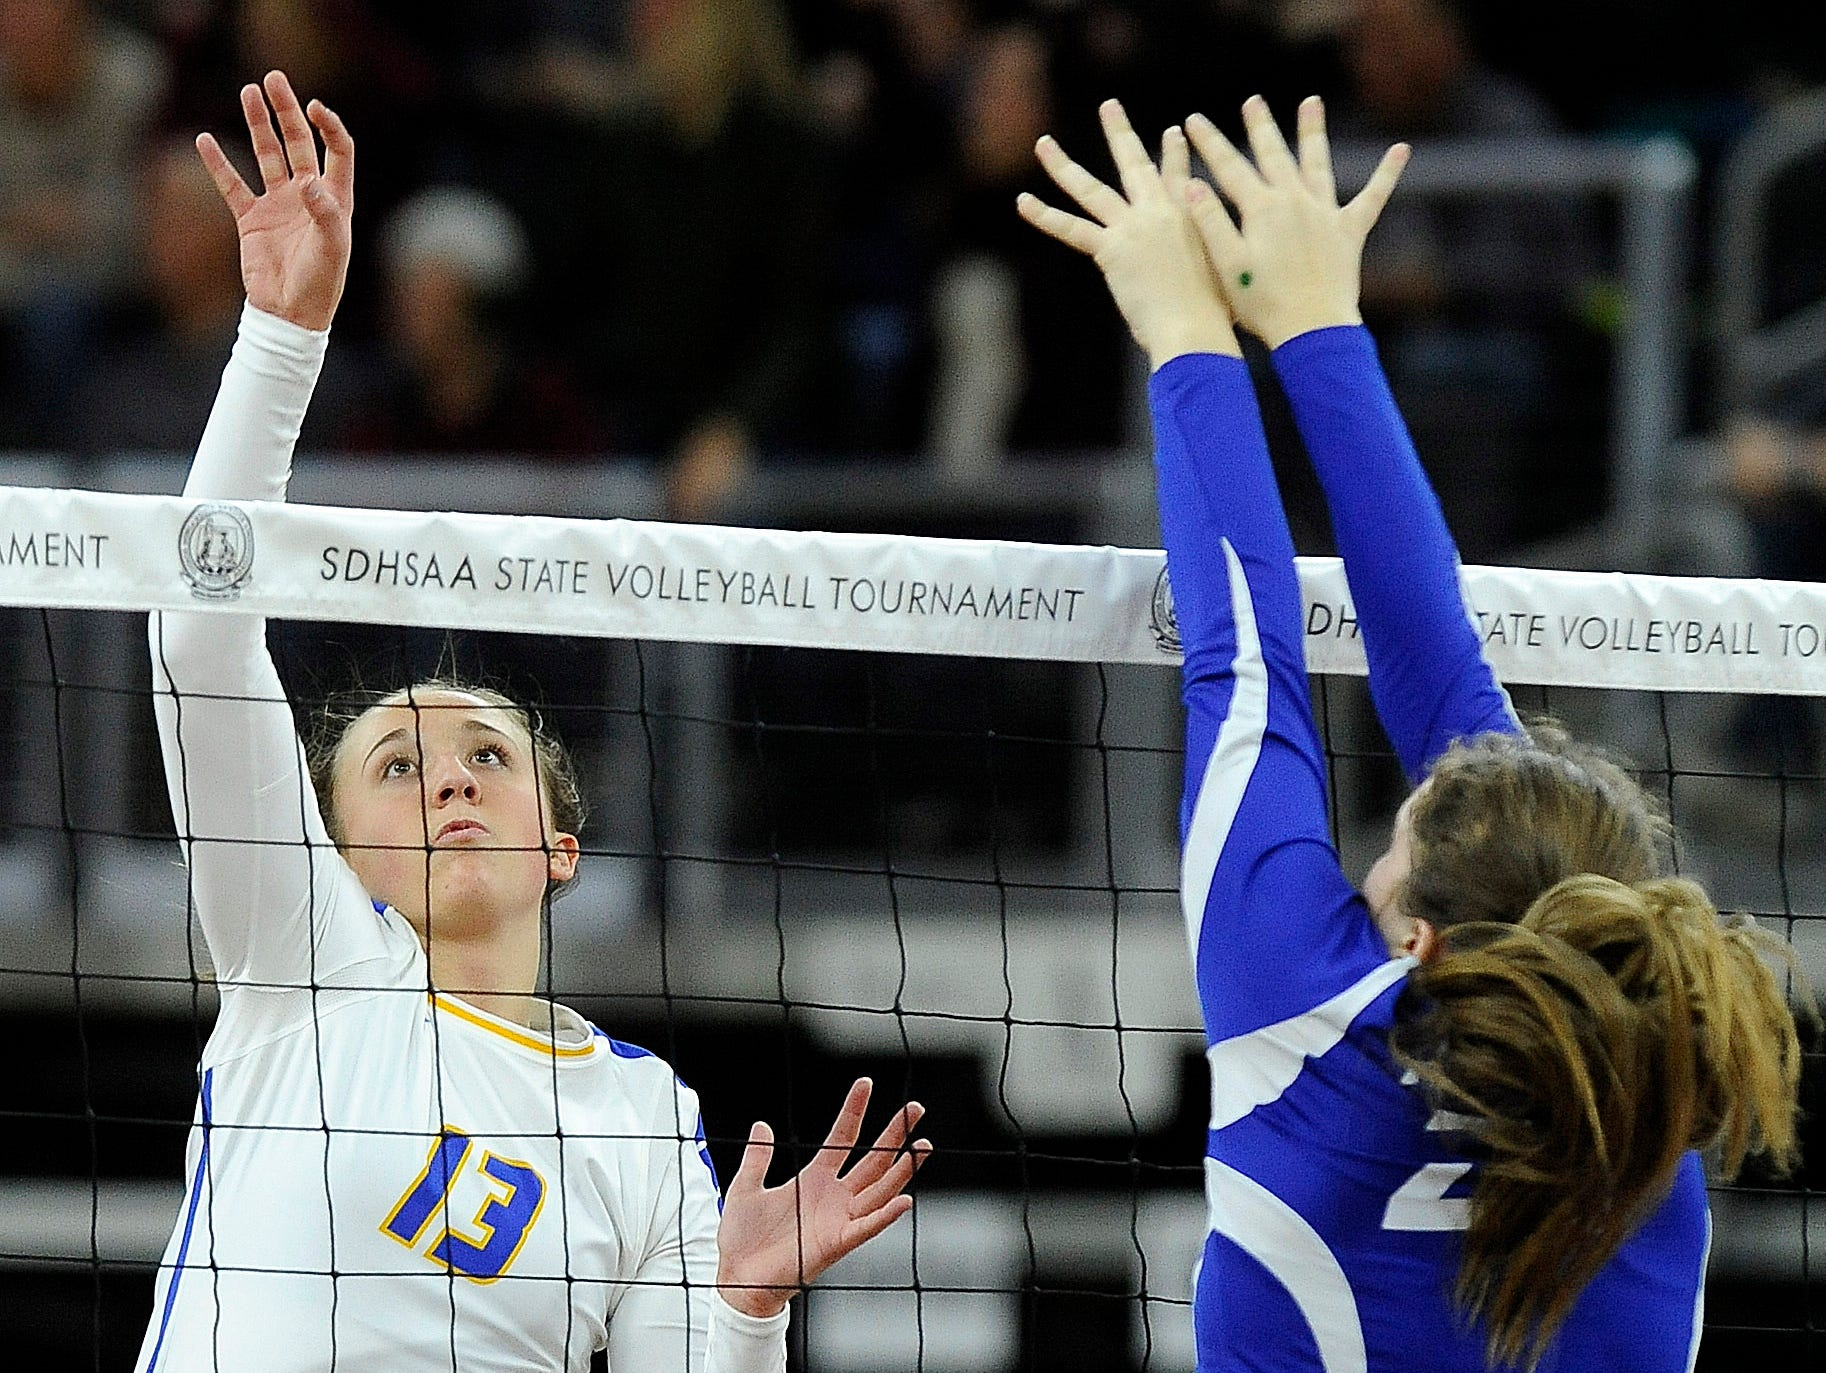 Aberdeen Central's #13 Brianna Kusler spikes the volleyball against O'Gorman's #20 Courtney Baruth during state semifinals volleyball action at the Denny Sanford Premier Center in Sioux Falls, S.D., Friday, Nov. 20, 2015.